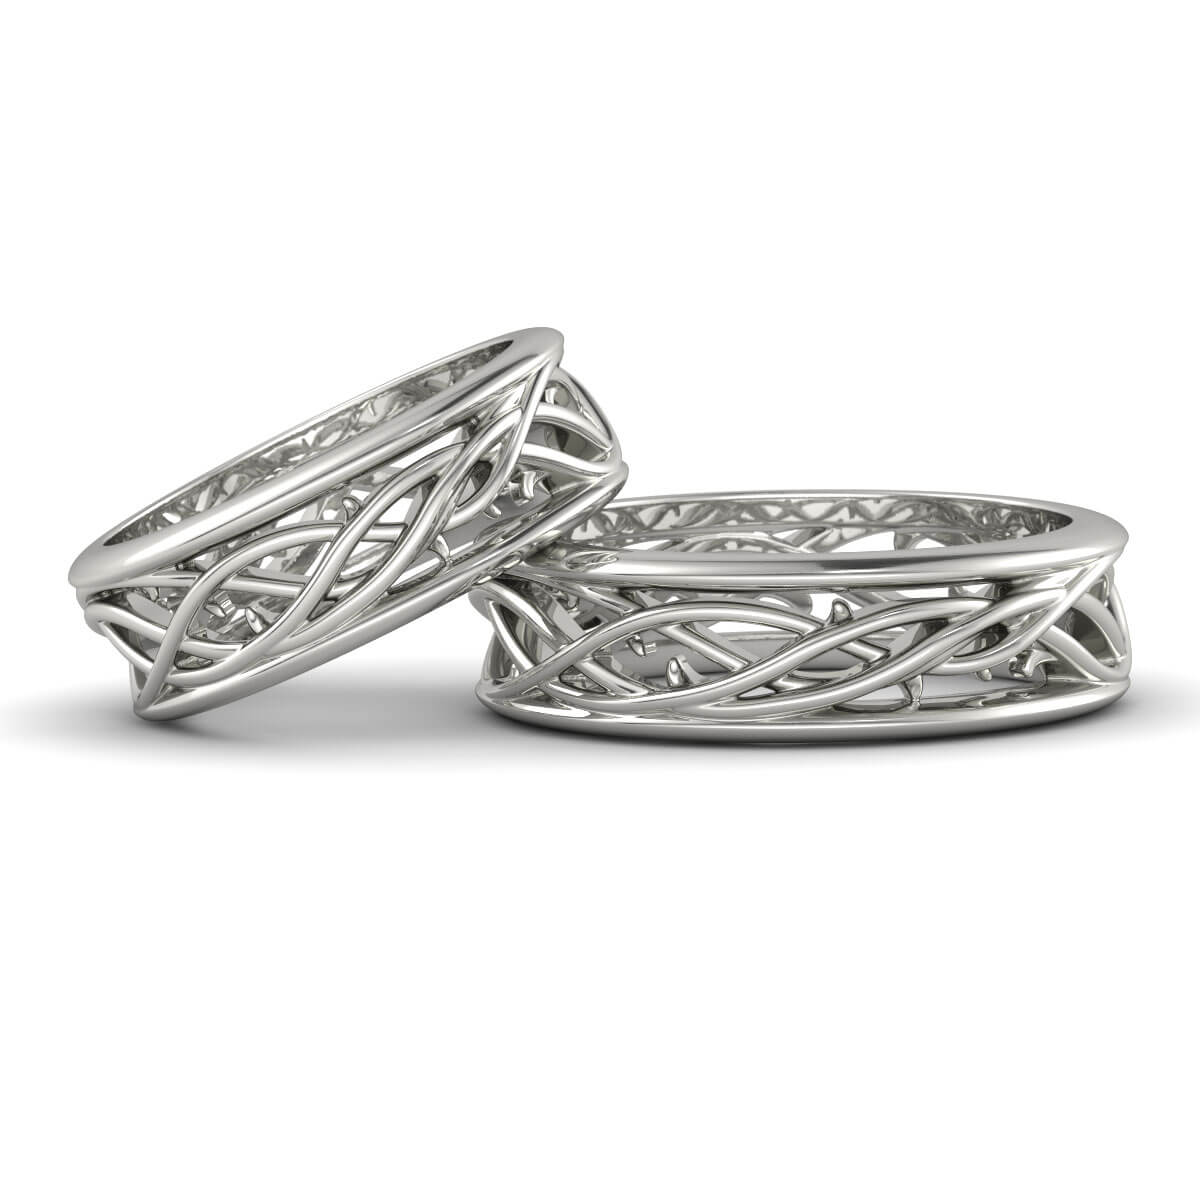 matching wedding bands claddagh wedding ring set FOREVER ENTWINED